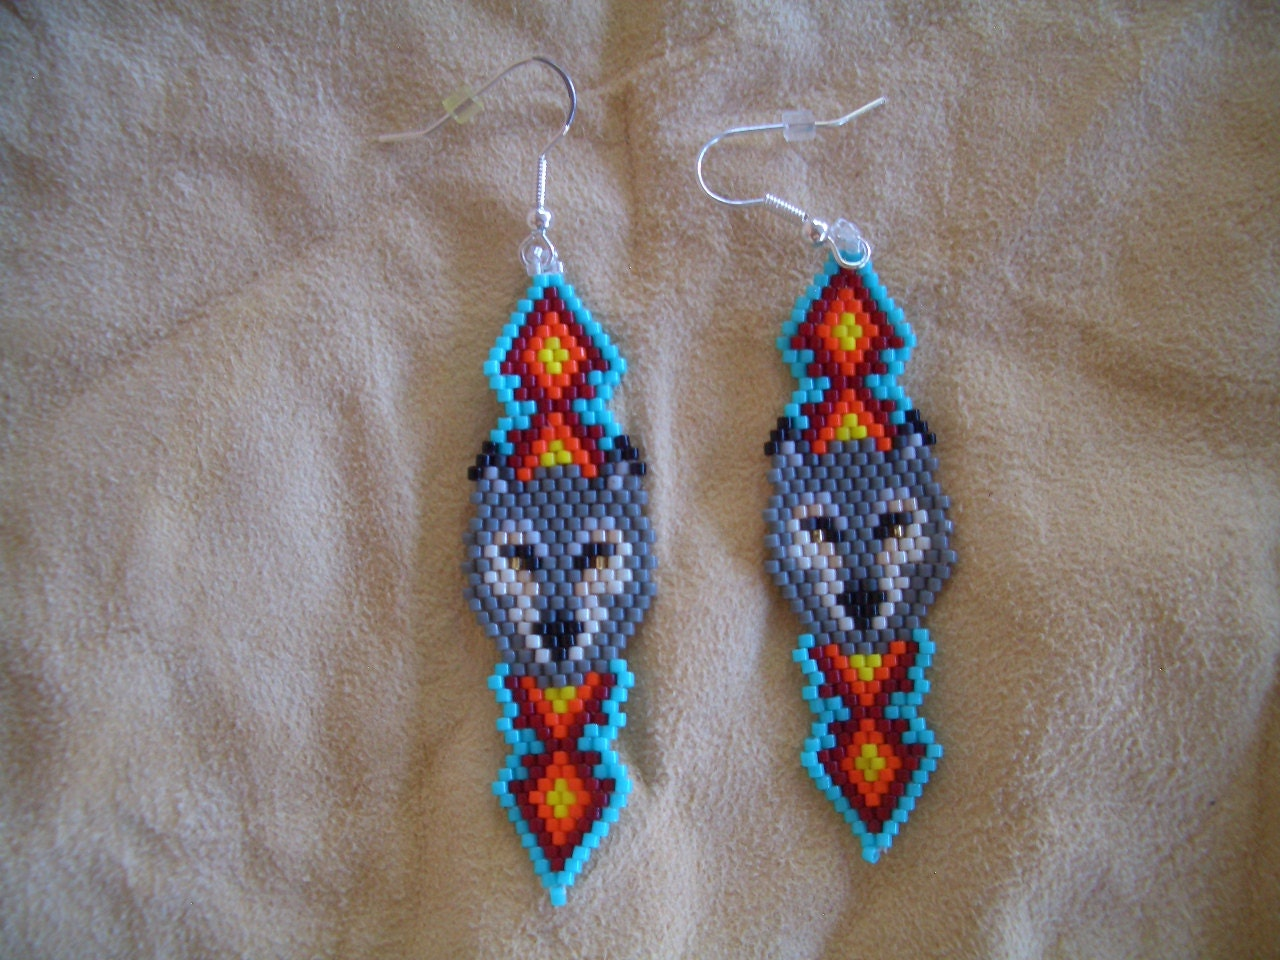 Native American Beaded Earrings Patterns Free Awesome Decorating Design